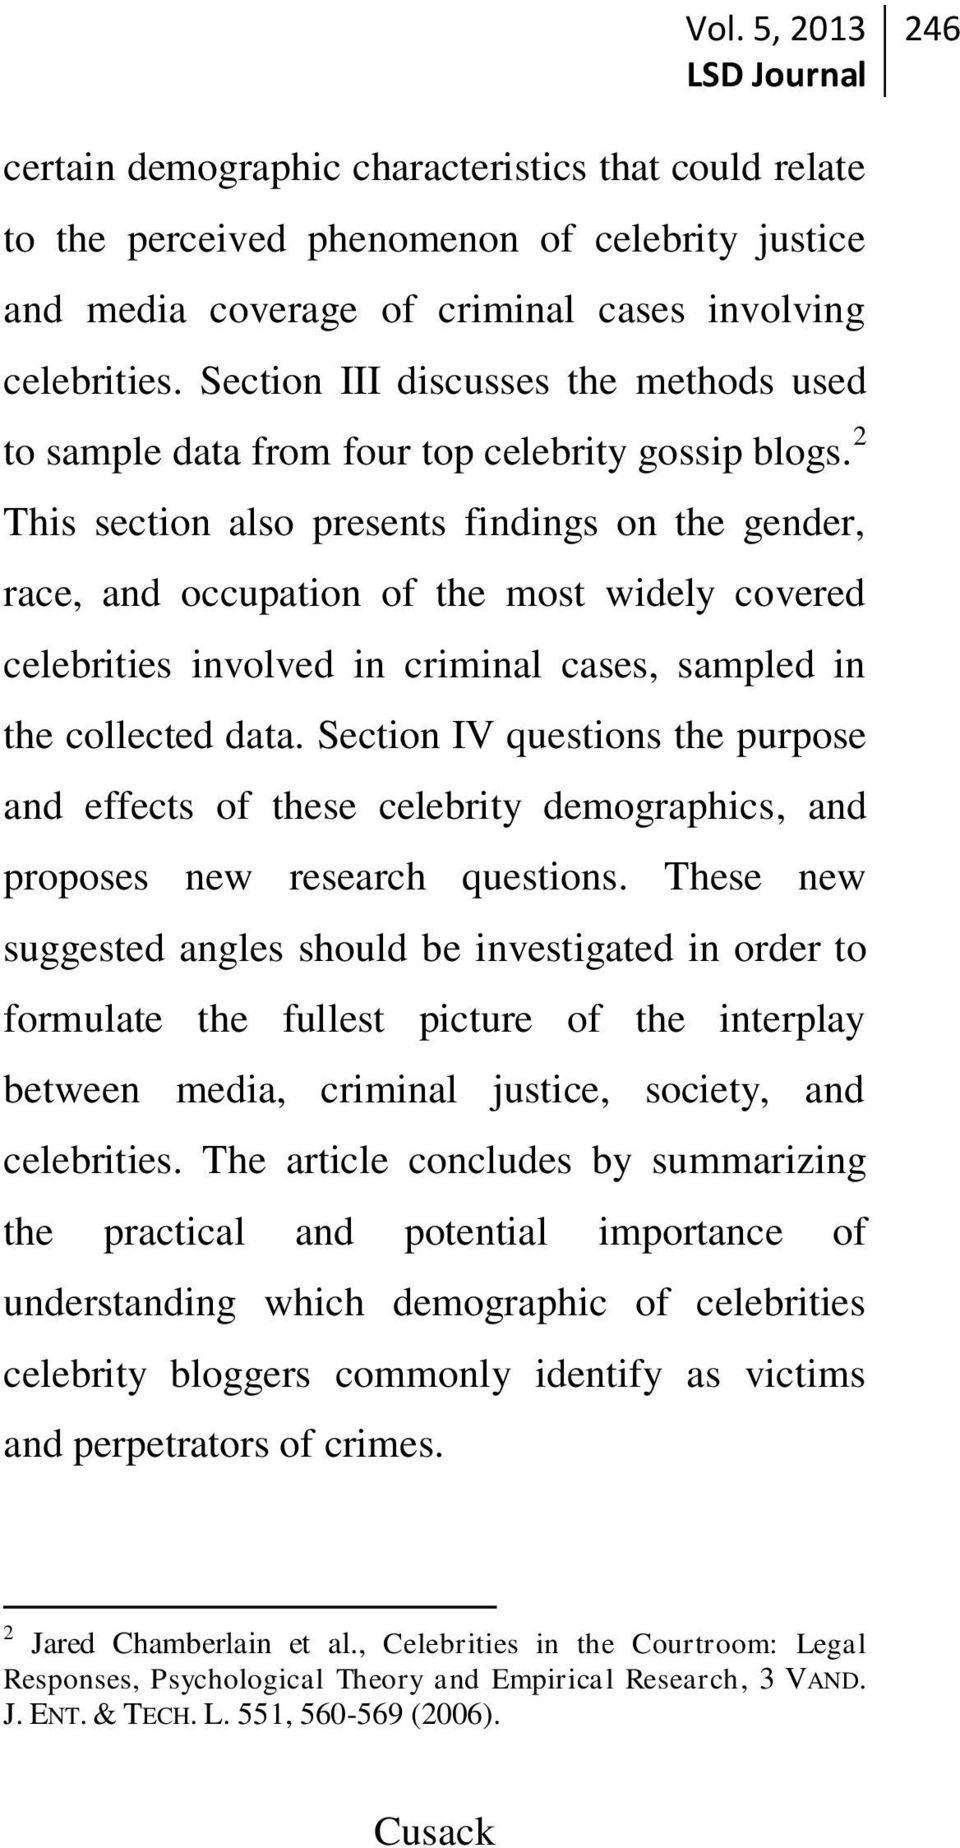 2 This section also presents findings on the gender, race, and occupation of the most widely covered celebrities involved in criminal cases, sampled in the collected data.